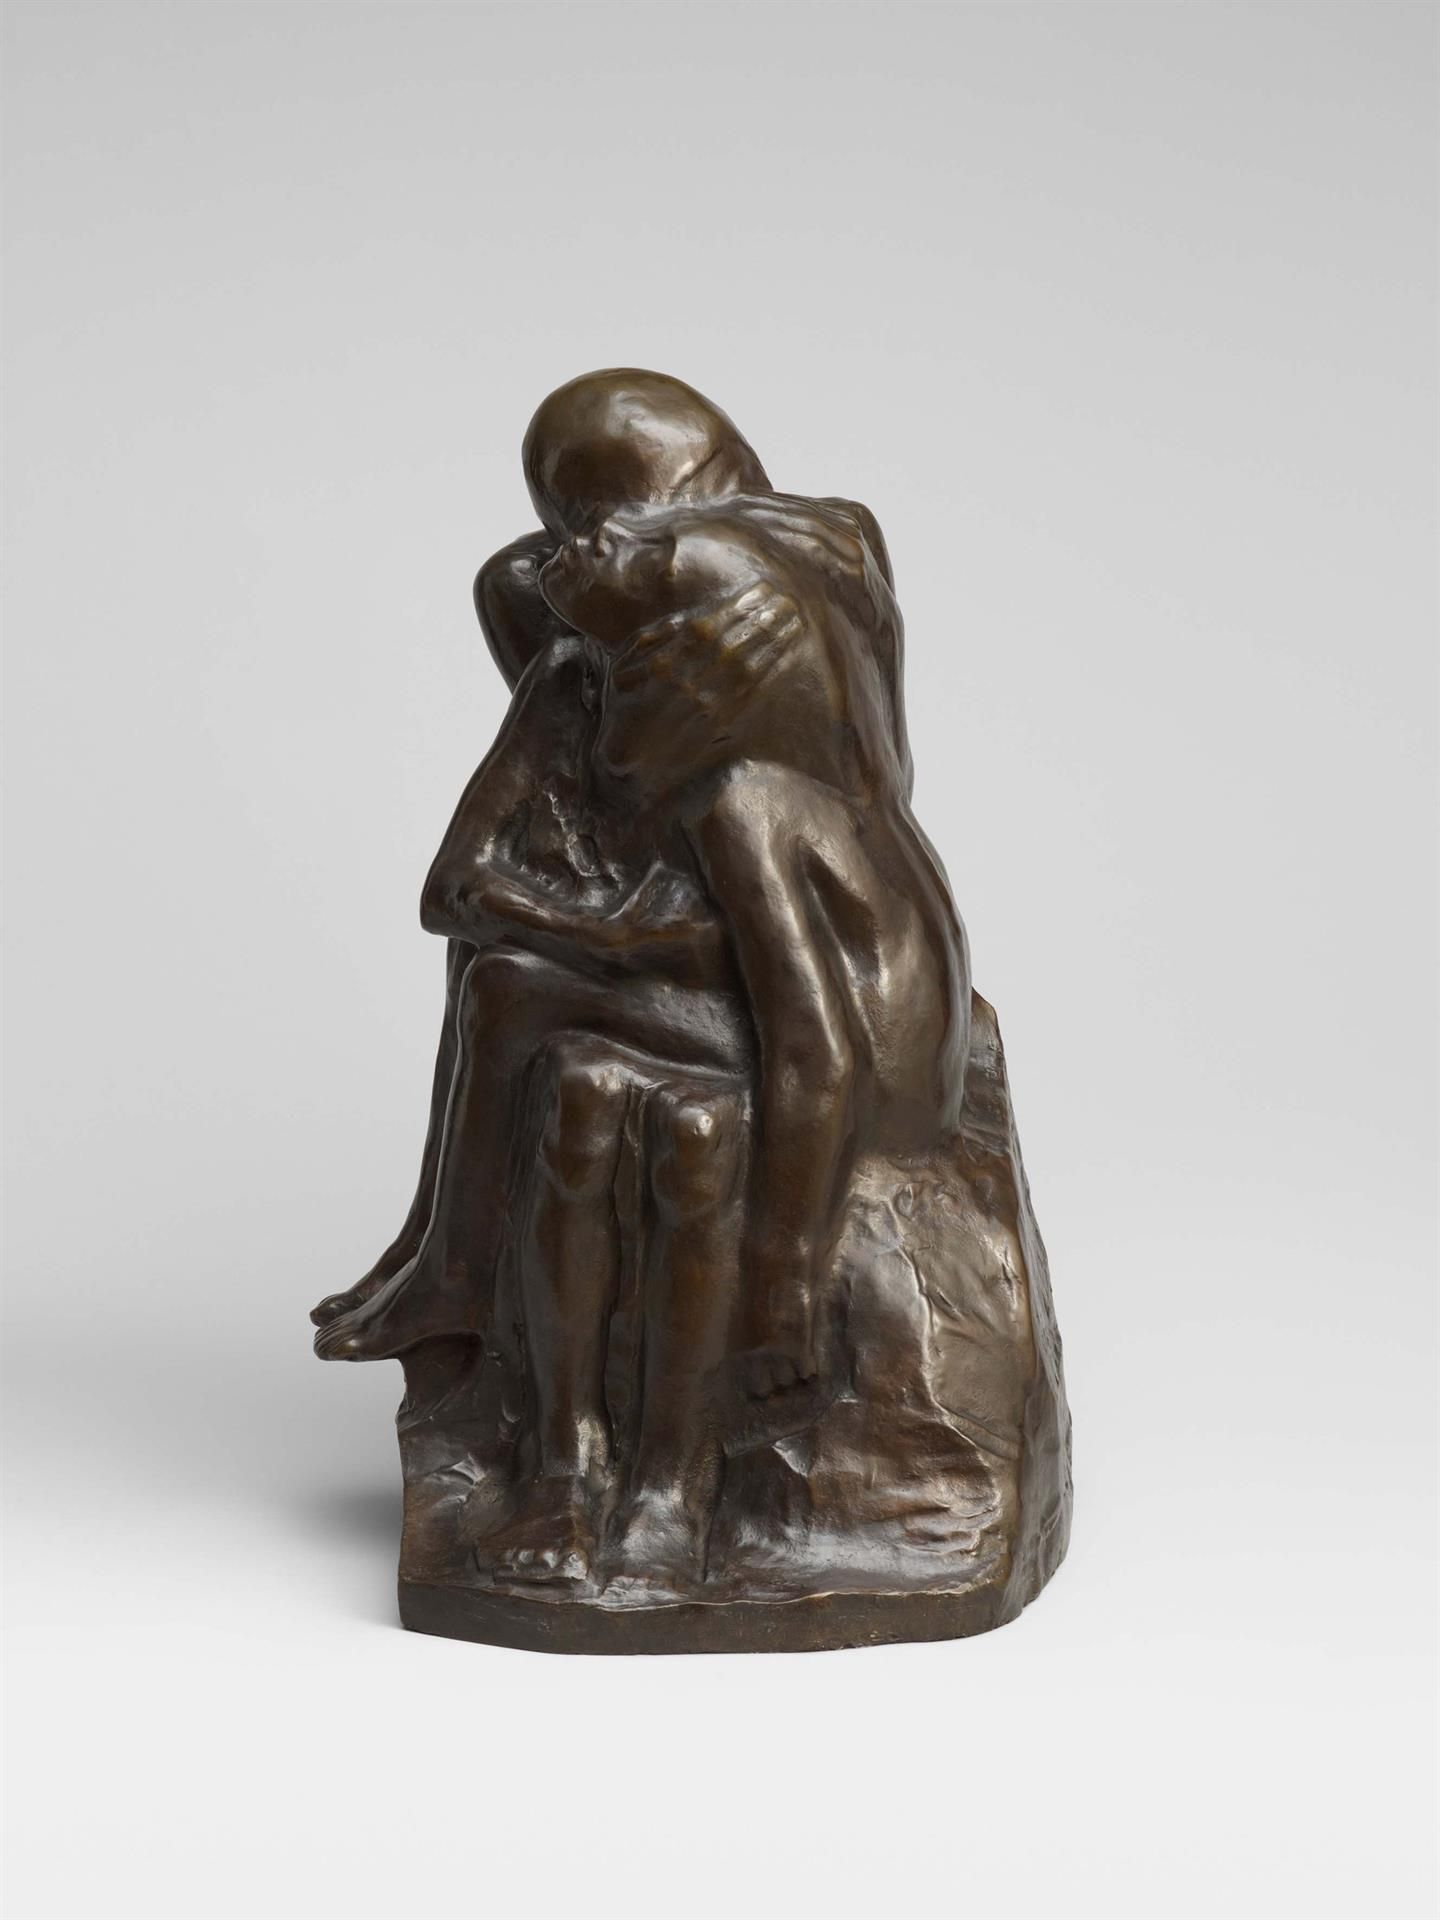 Käthe Kollwitz, Pair of Lovers, 1913-1915, bronze, Seeler 19.II.B.9., Cologne Kollwitz Collection © Käthe Kollwitz Museum Köln